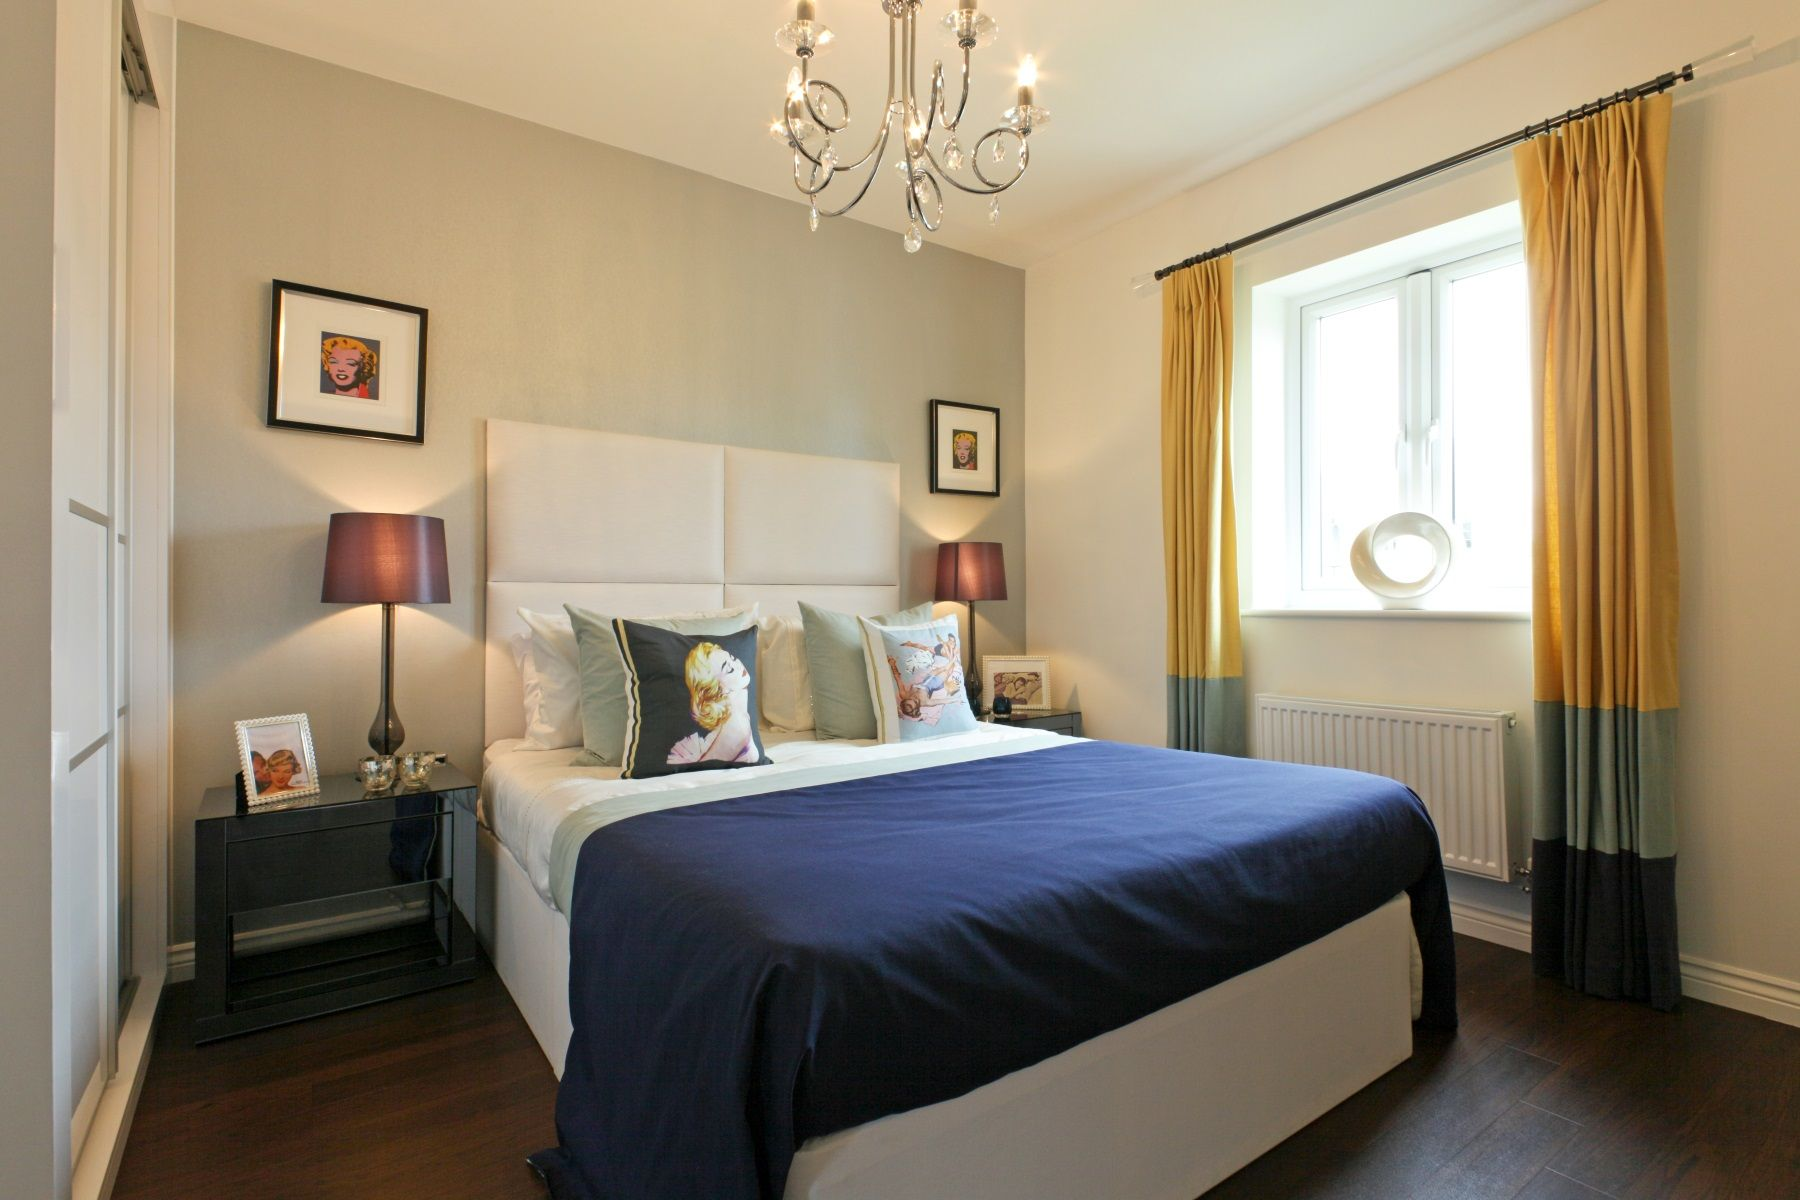 TW Exeter - Cranbrook - Newdale example bedroom